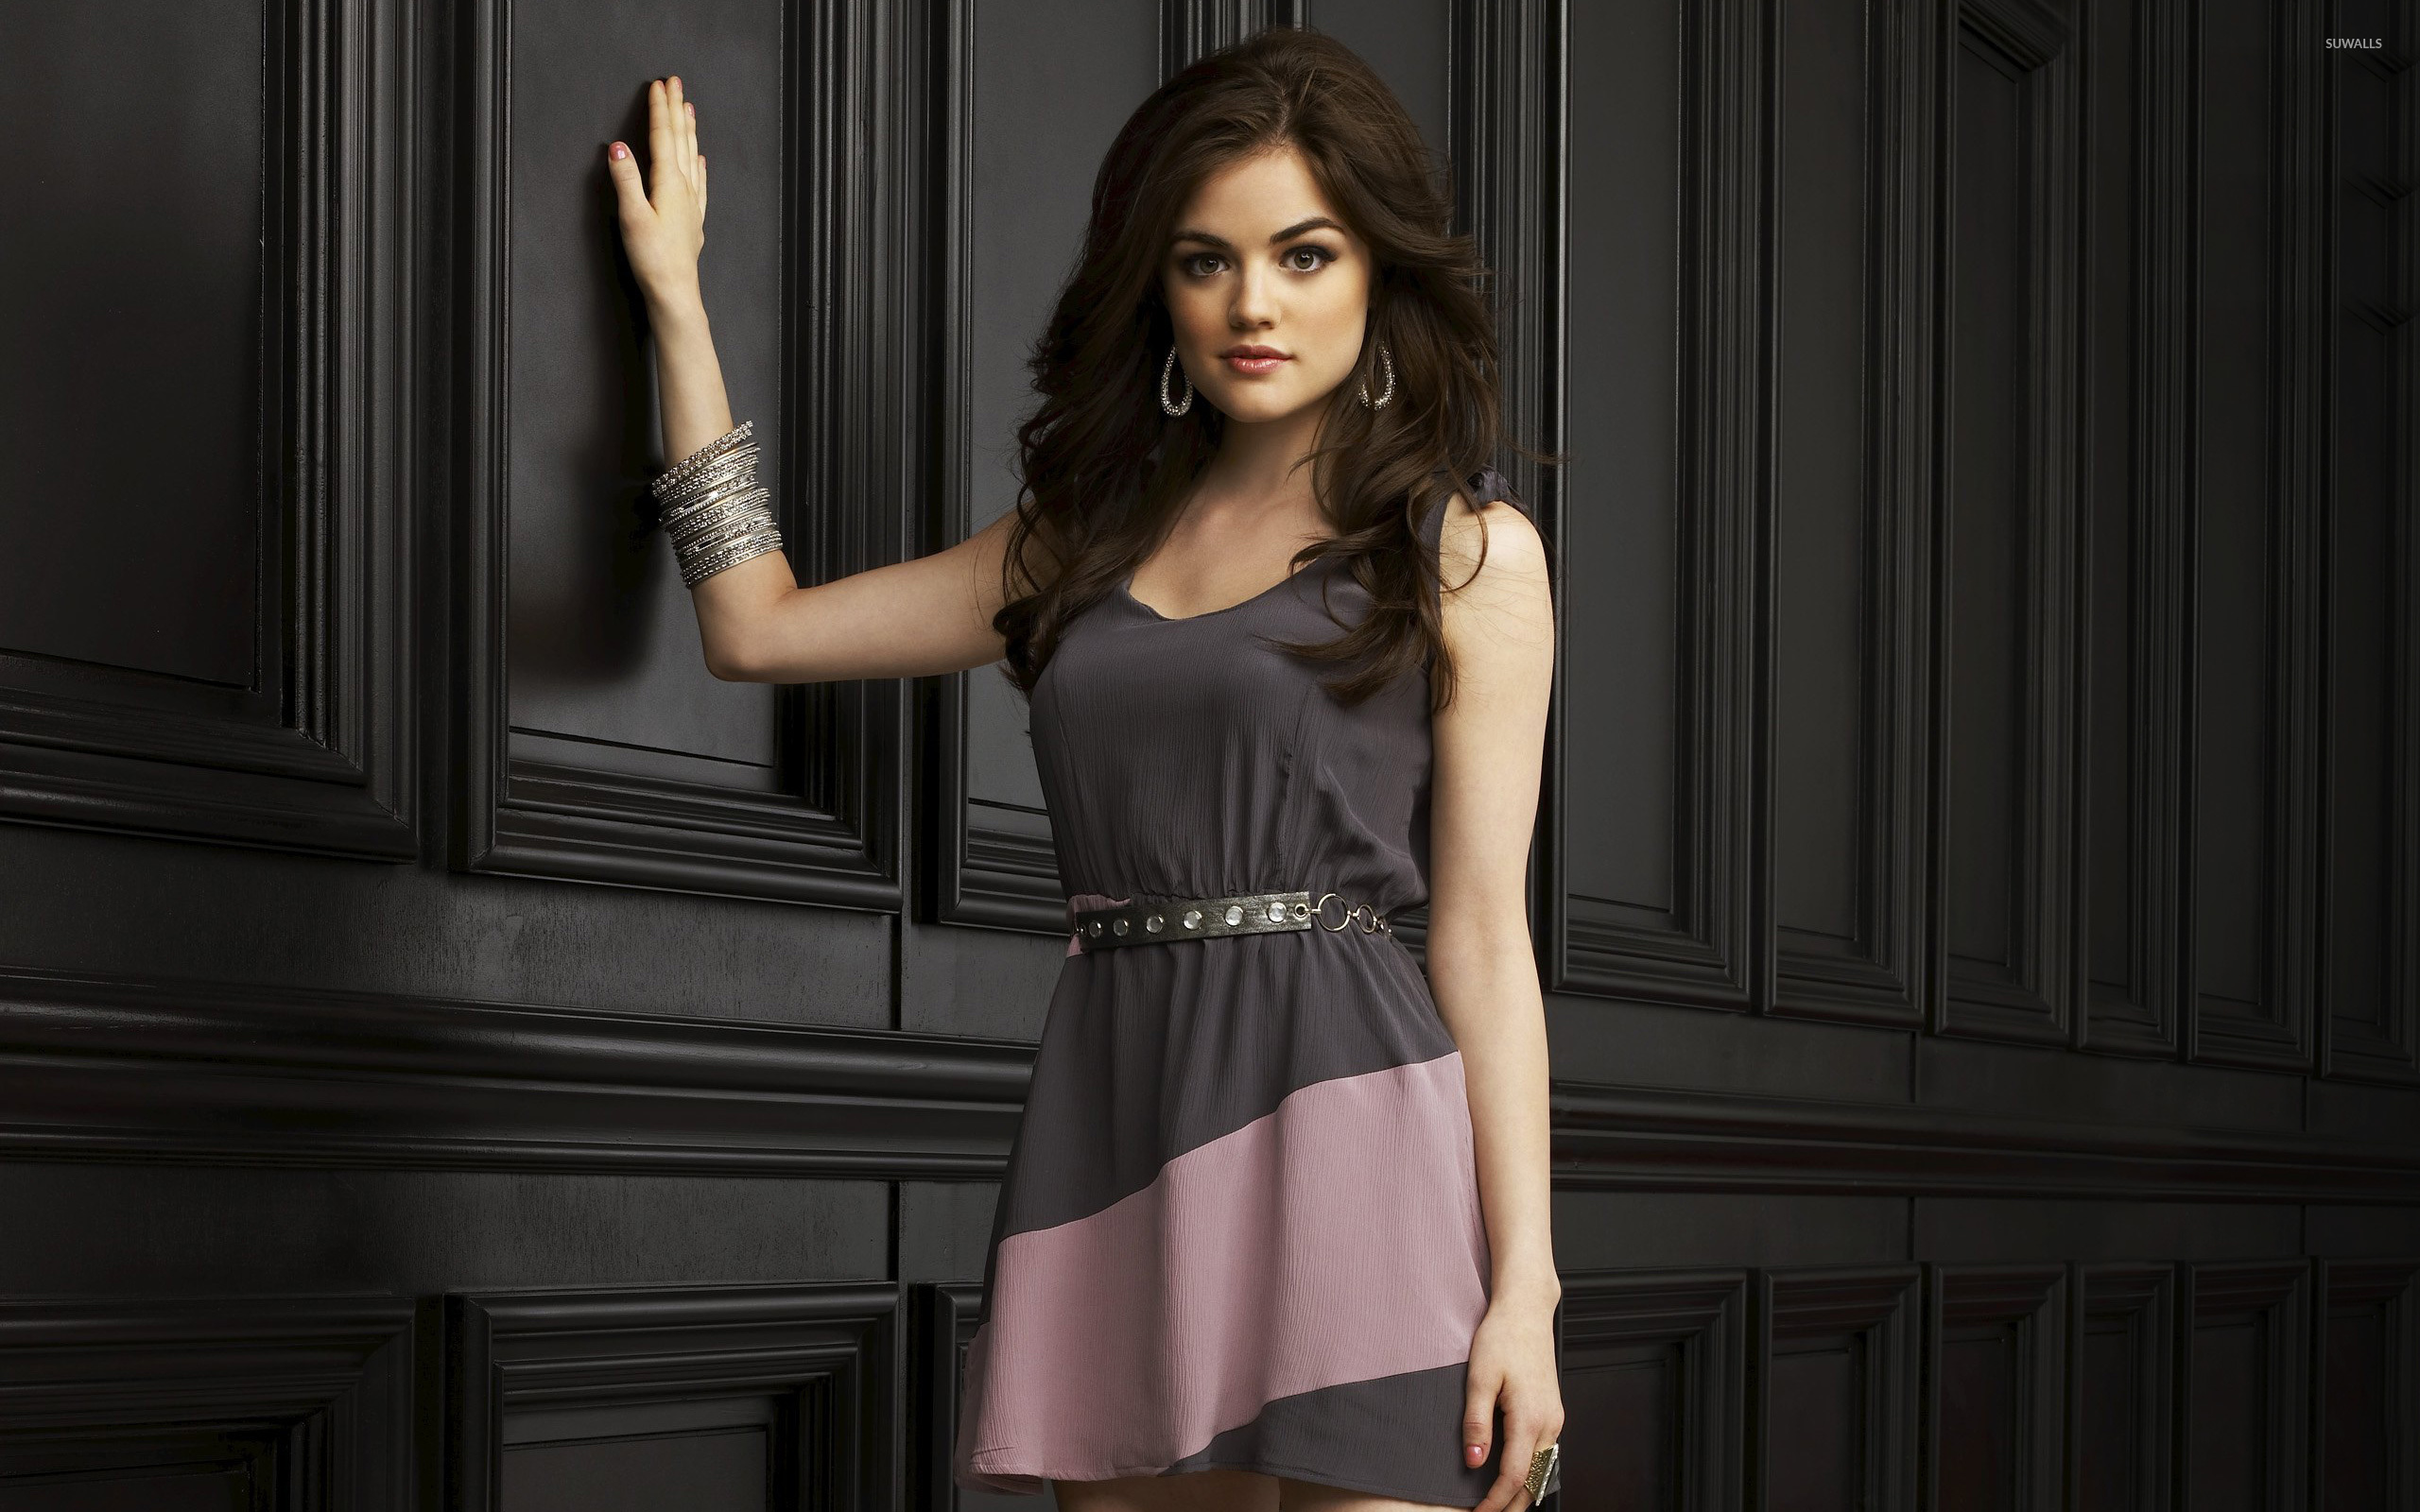 2560x1600 - Lucy Hale Wallpapers 12